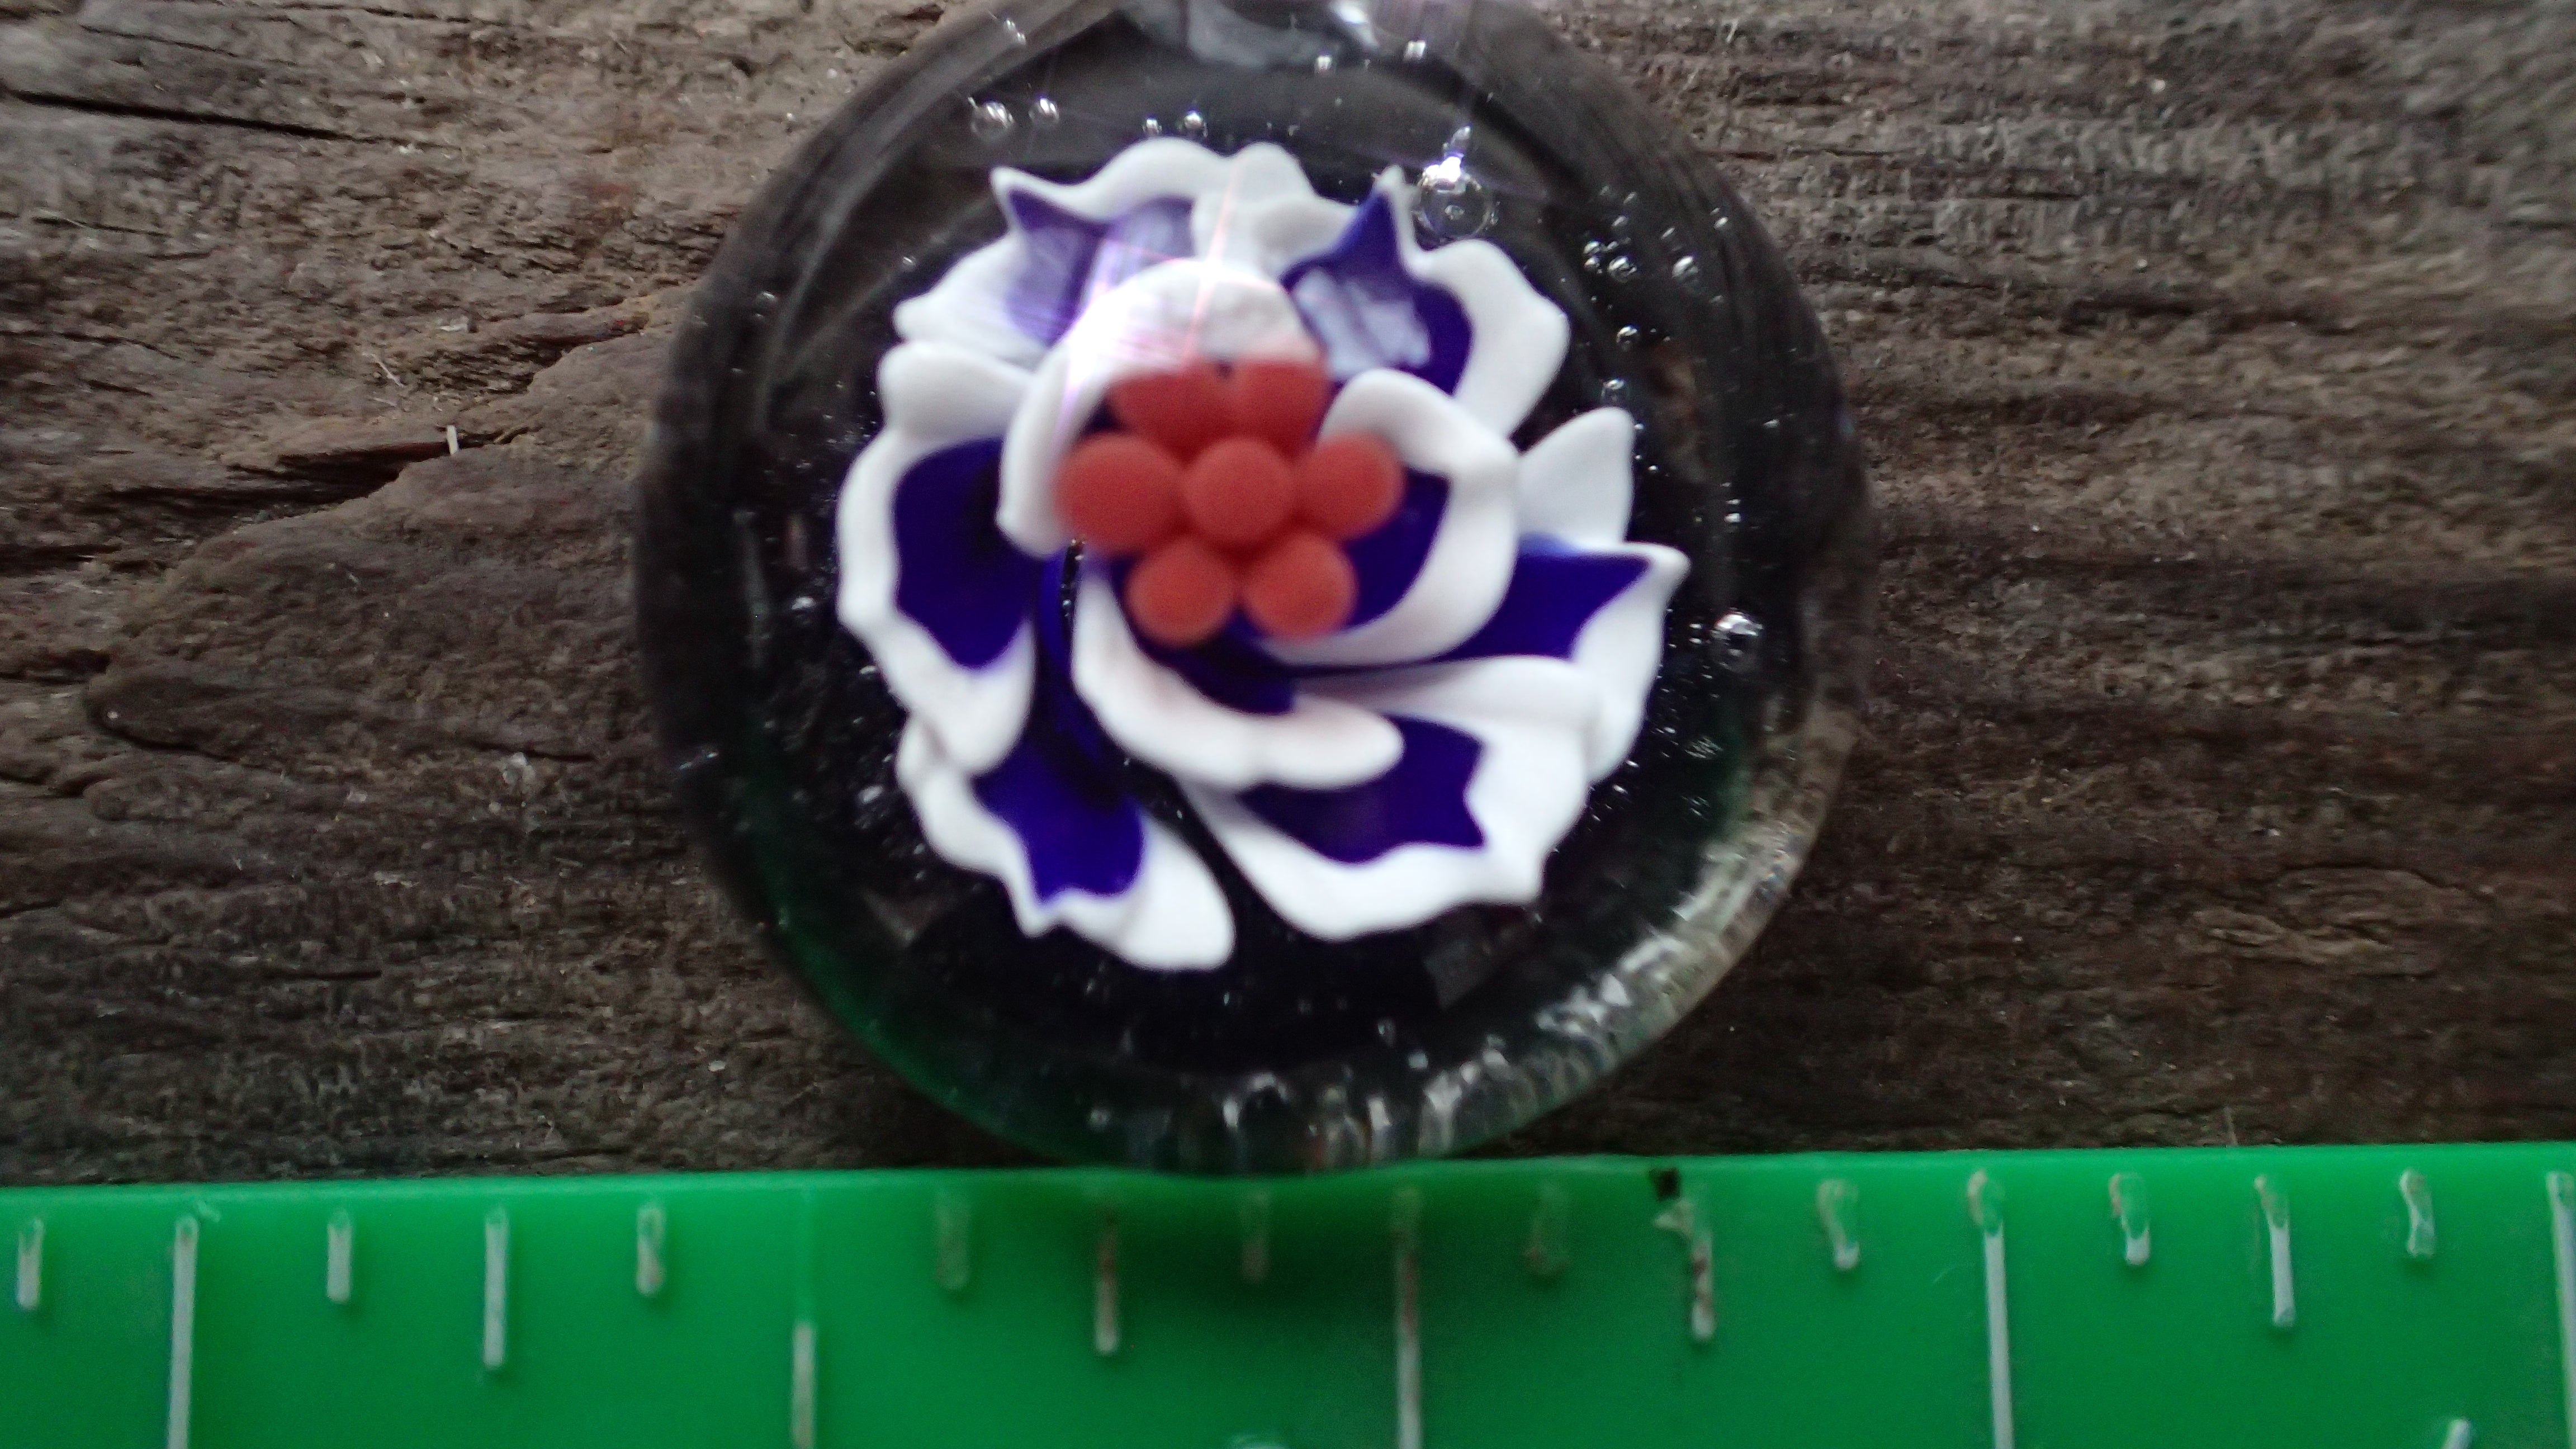 Flower Pendant with White and Blue Petals, as well as Red Pistils : Glass art